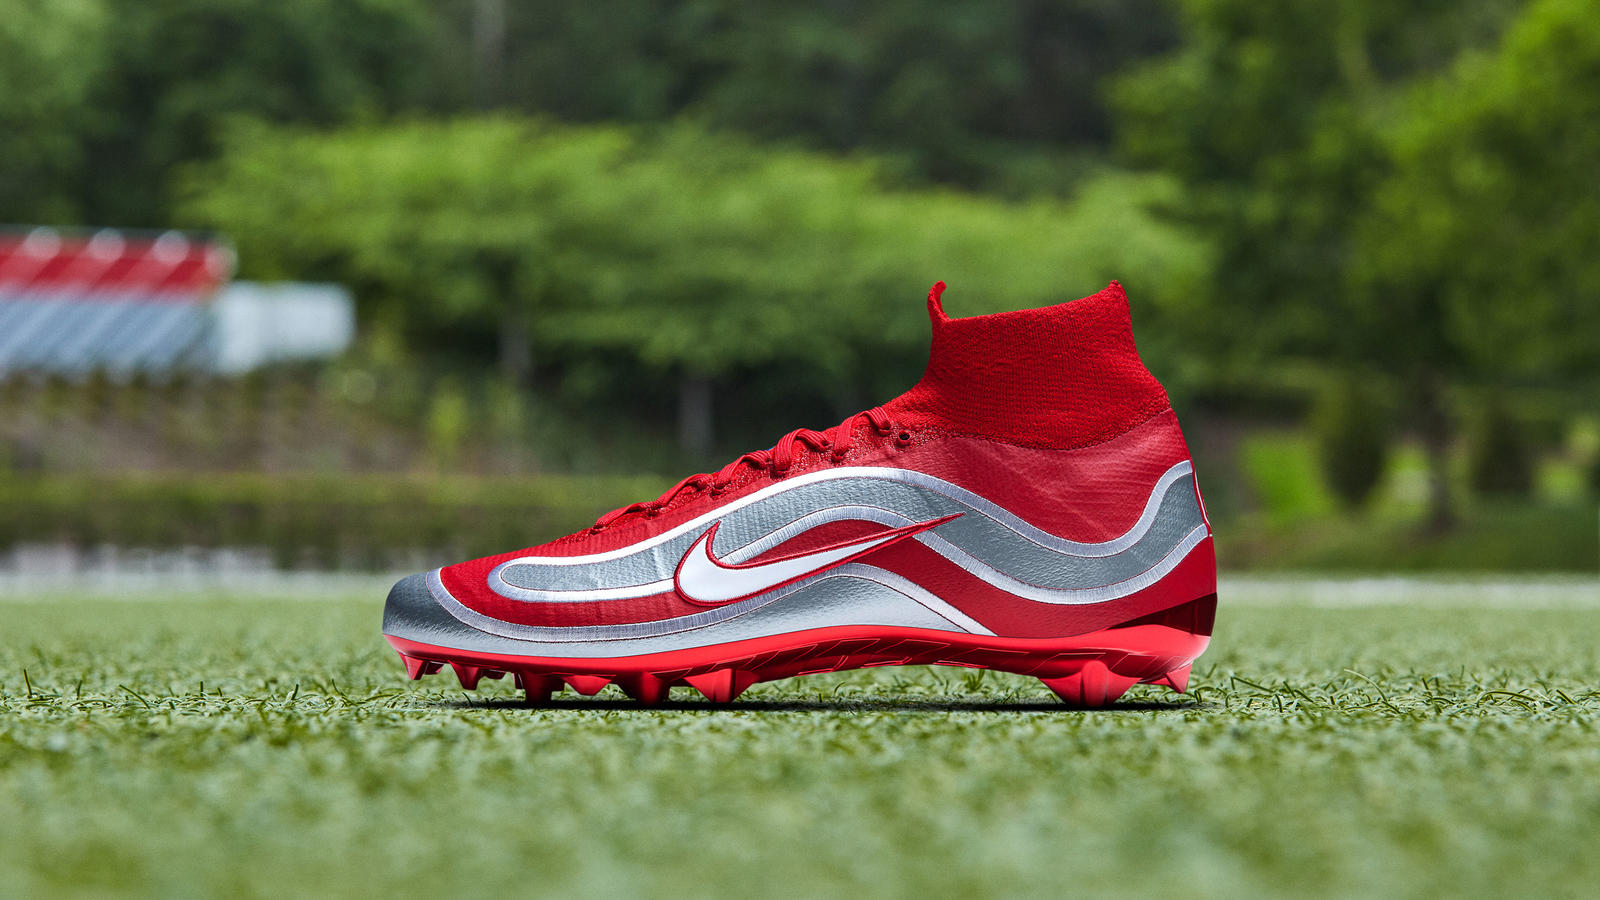 Featuredfootwear obj pregame 2018 game2 mercurial 133 hd 1600